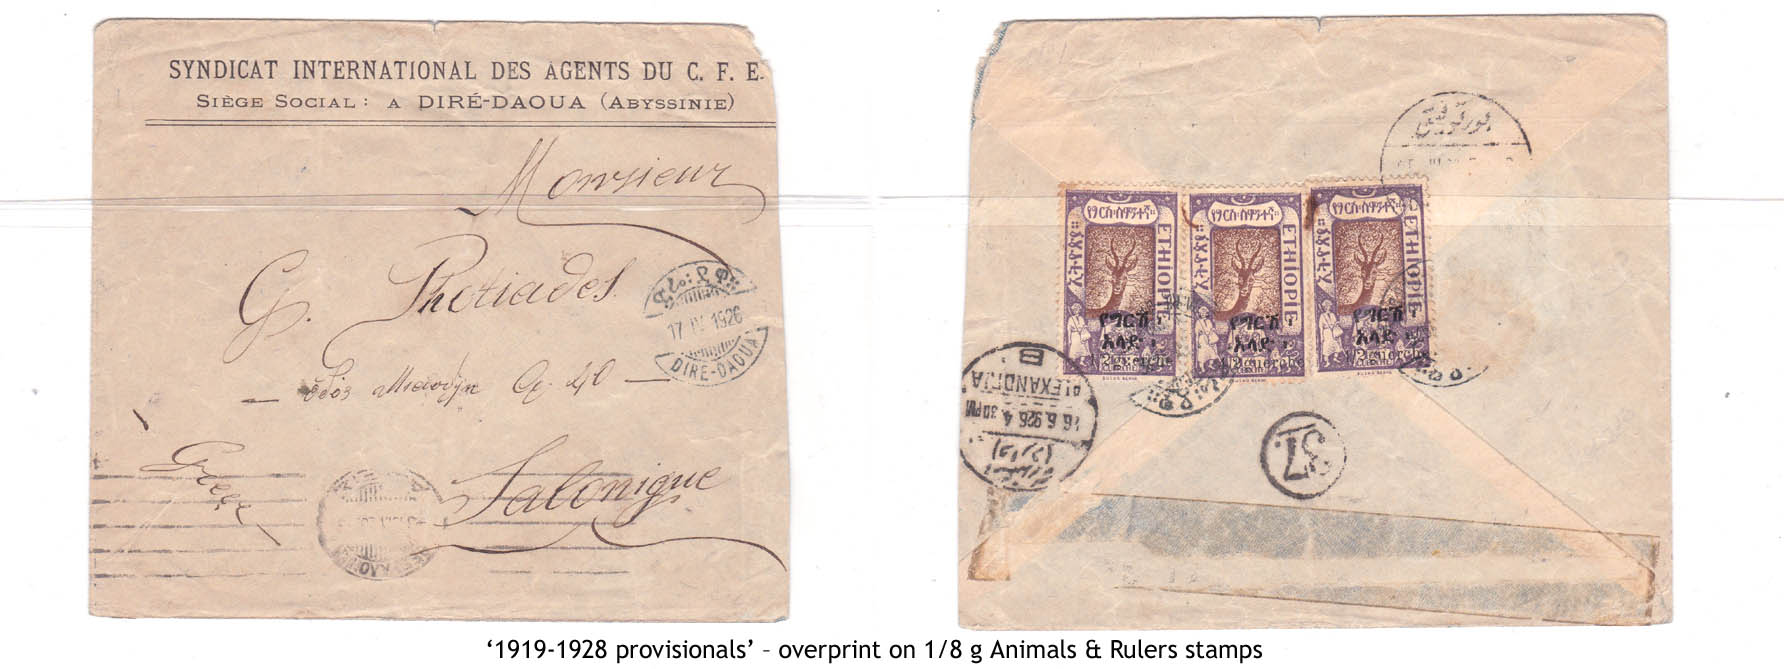 1919-1928 provisionals' – overprint on 1-8 g Animals & Rulers stamps